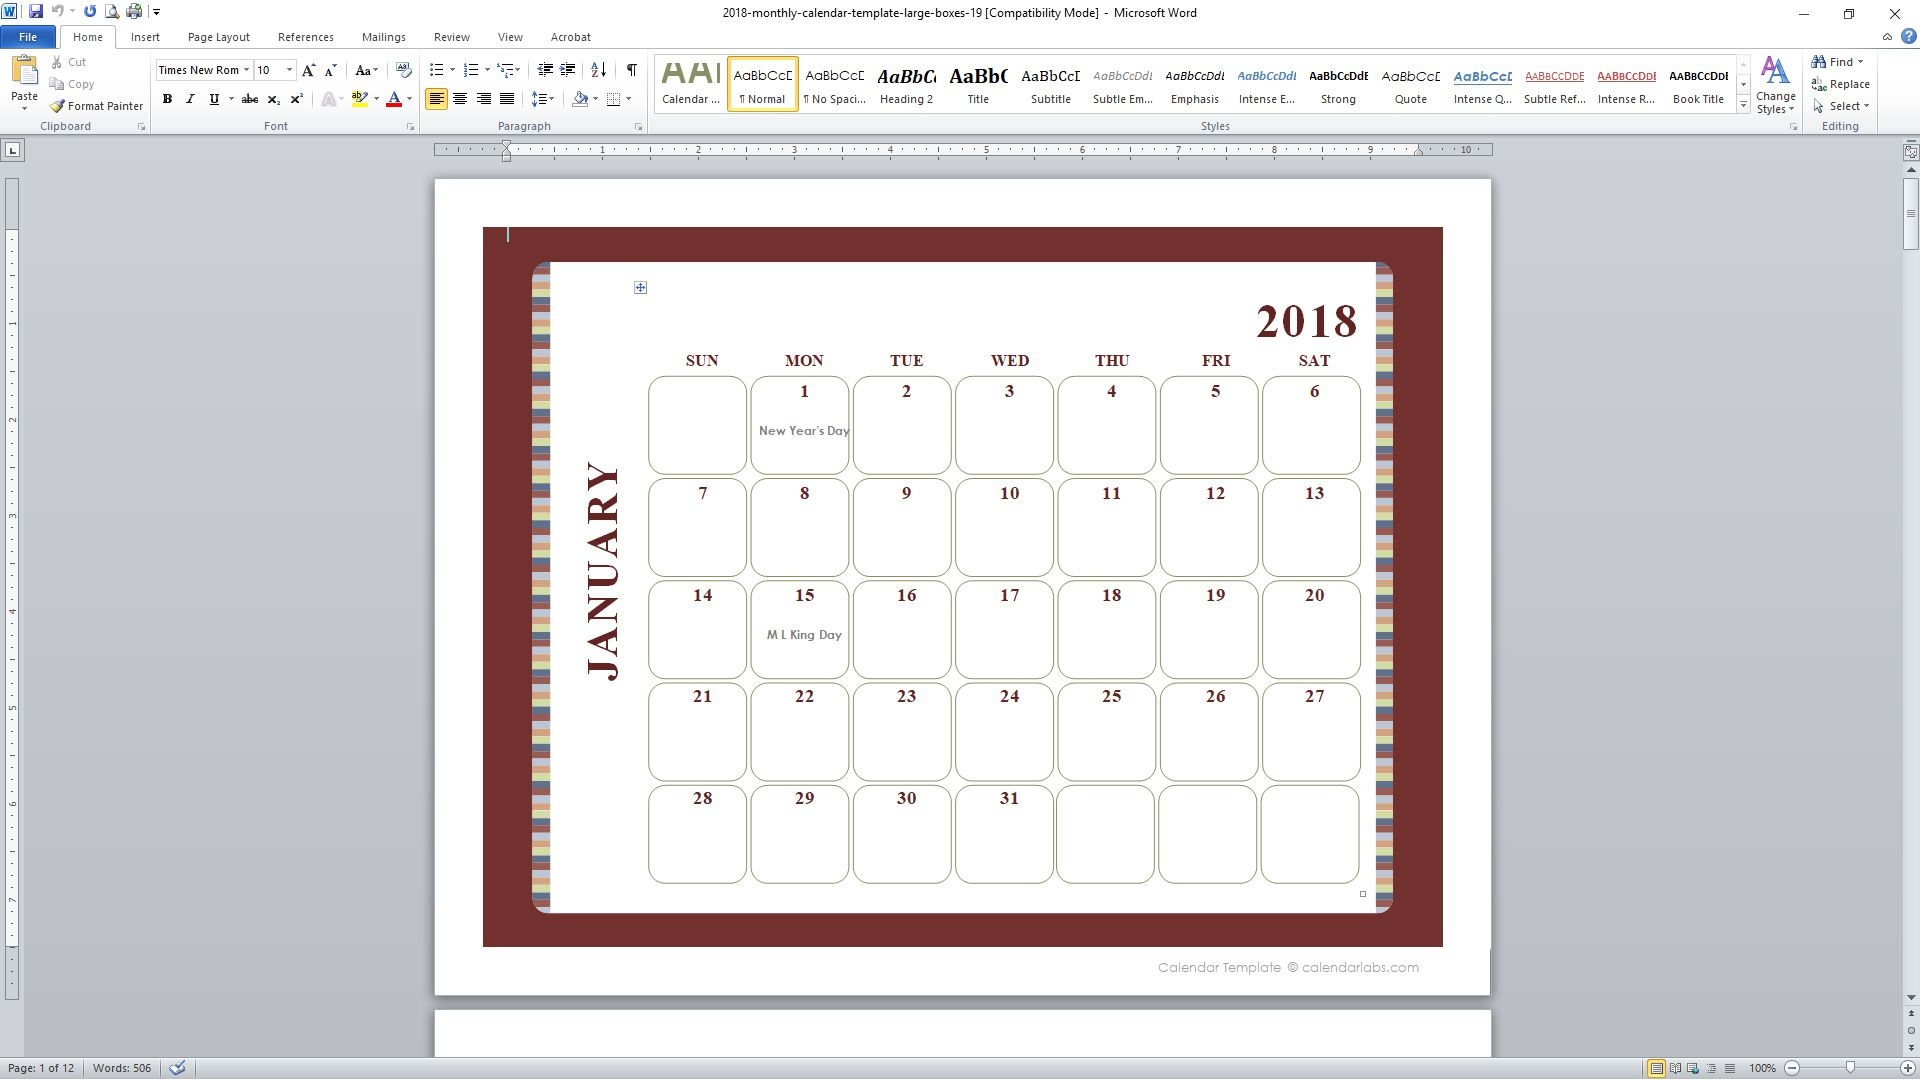 89 free calendar templates for 2018 and beyond saigontimesfo